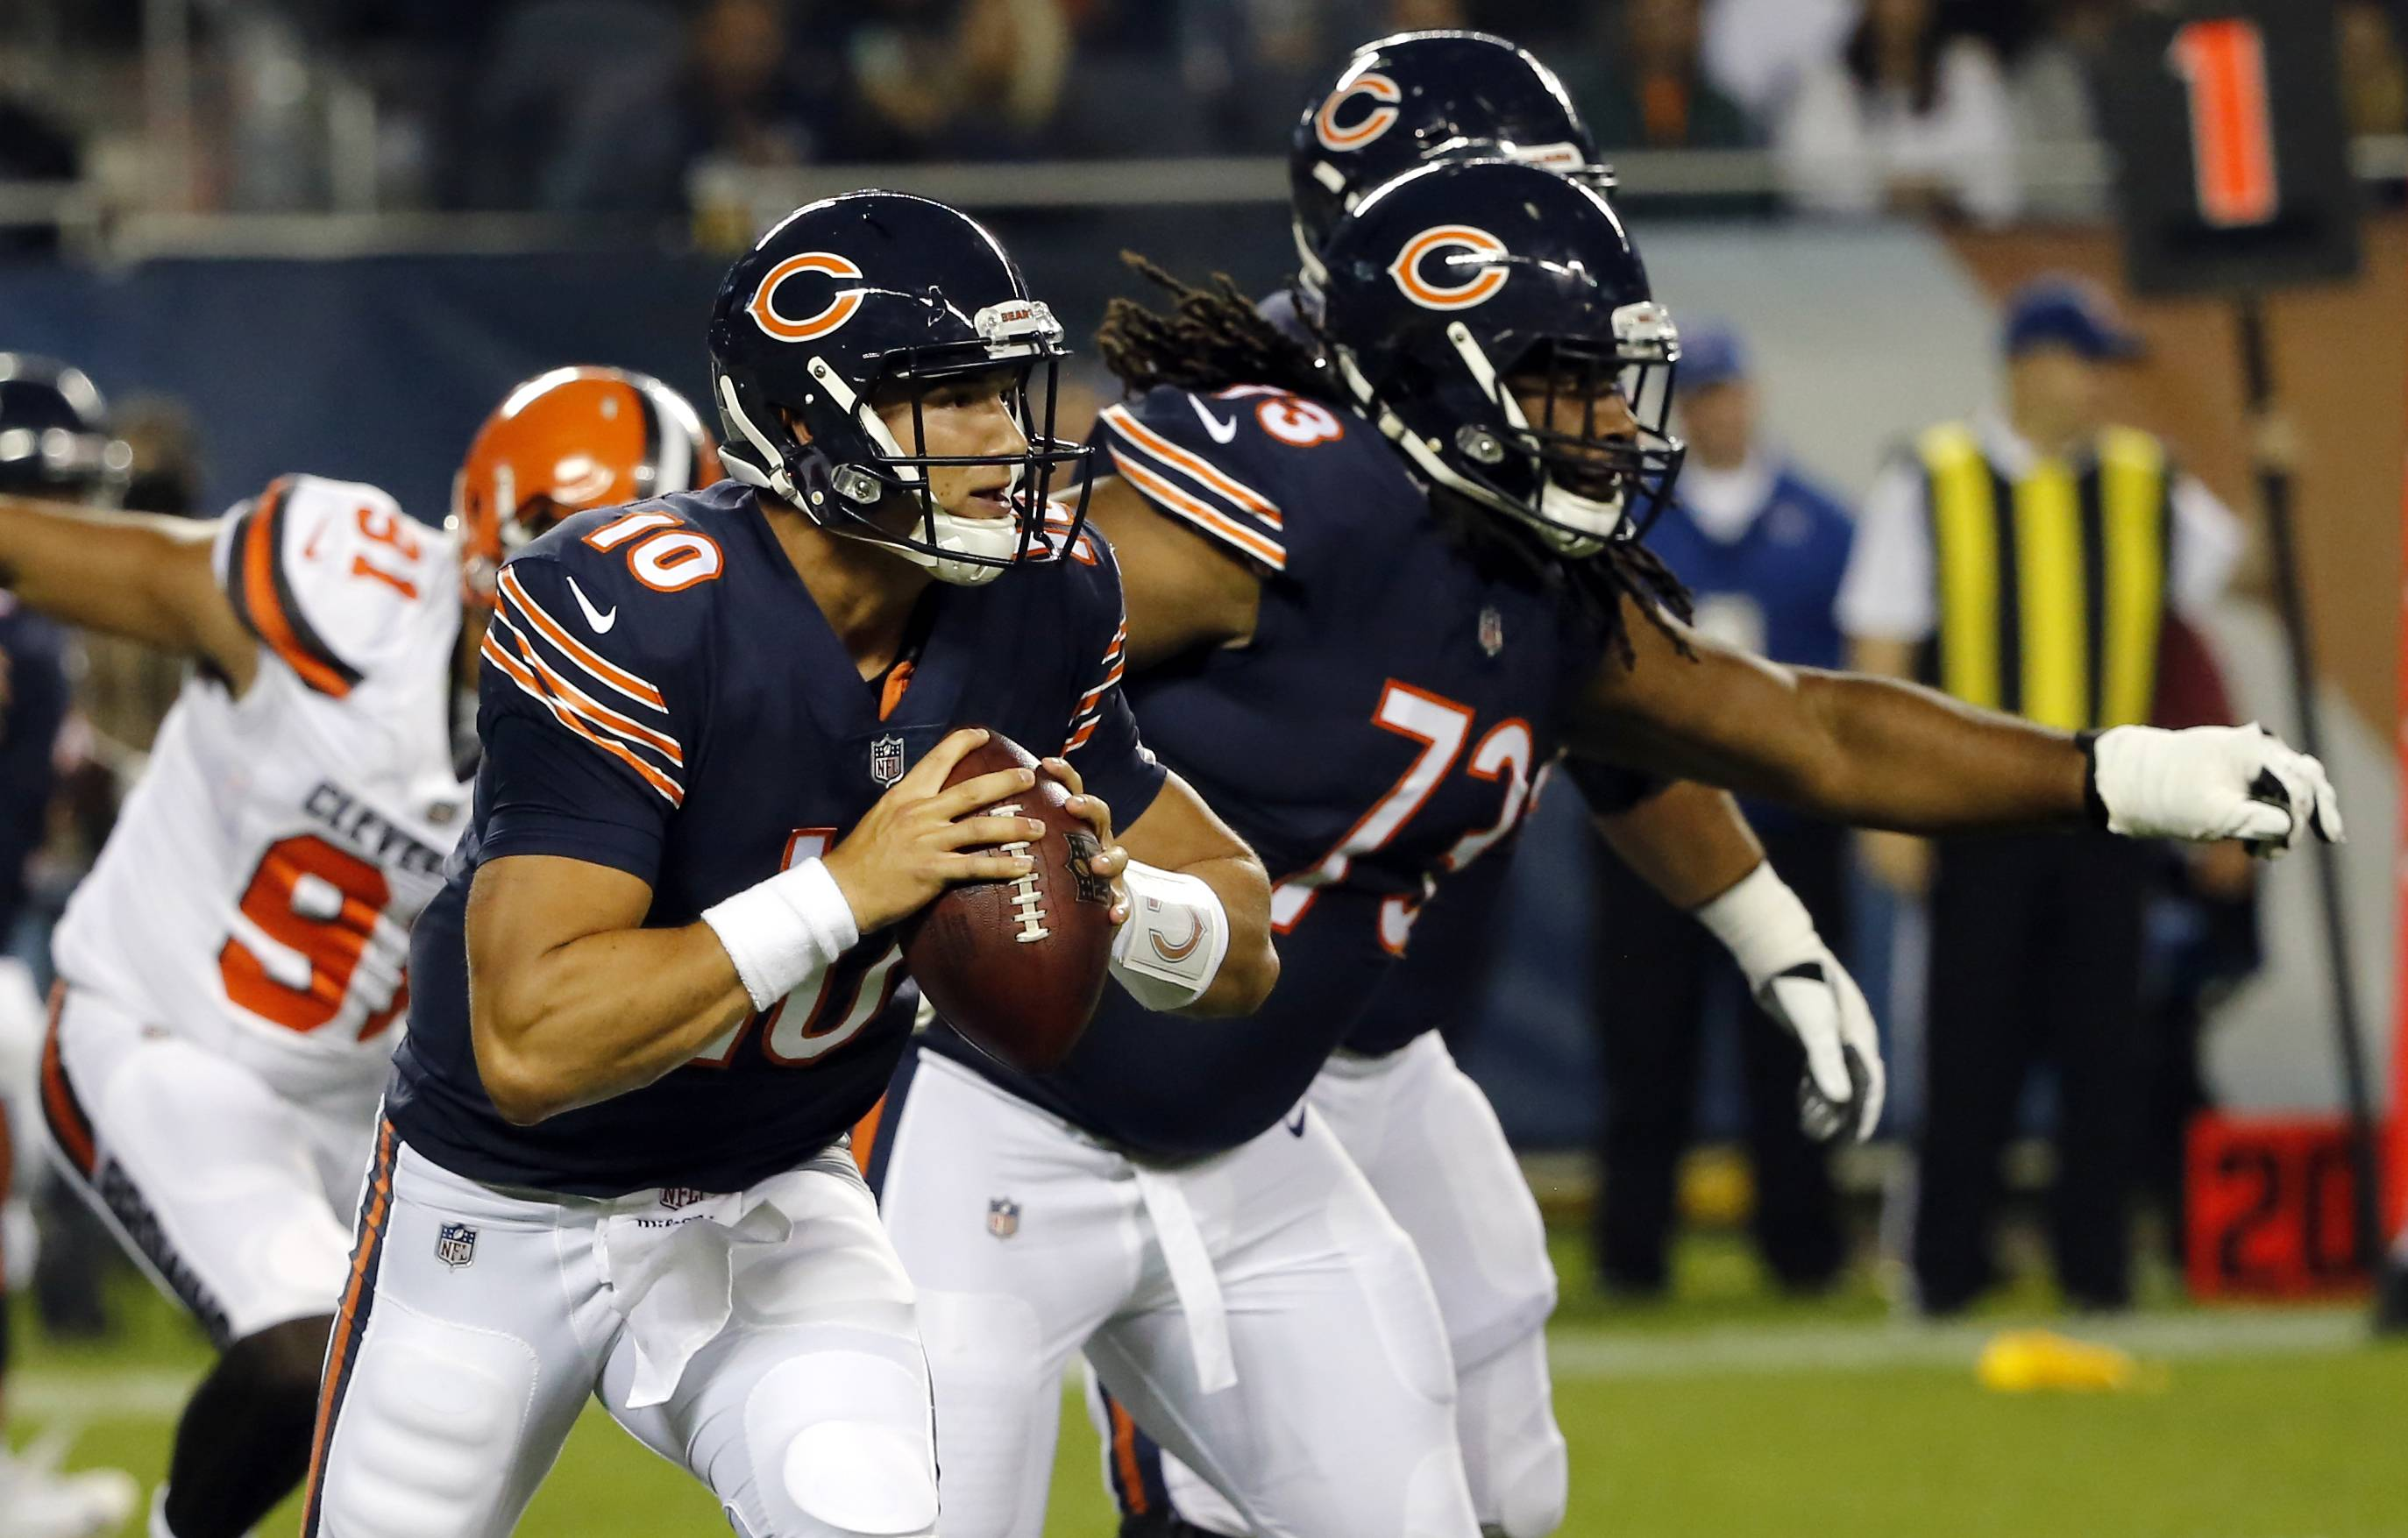 Mitch Trubisky can't do it alone, Chicago Bears' Loggains says